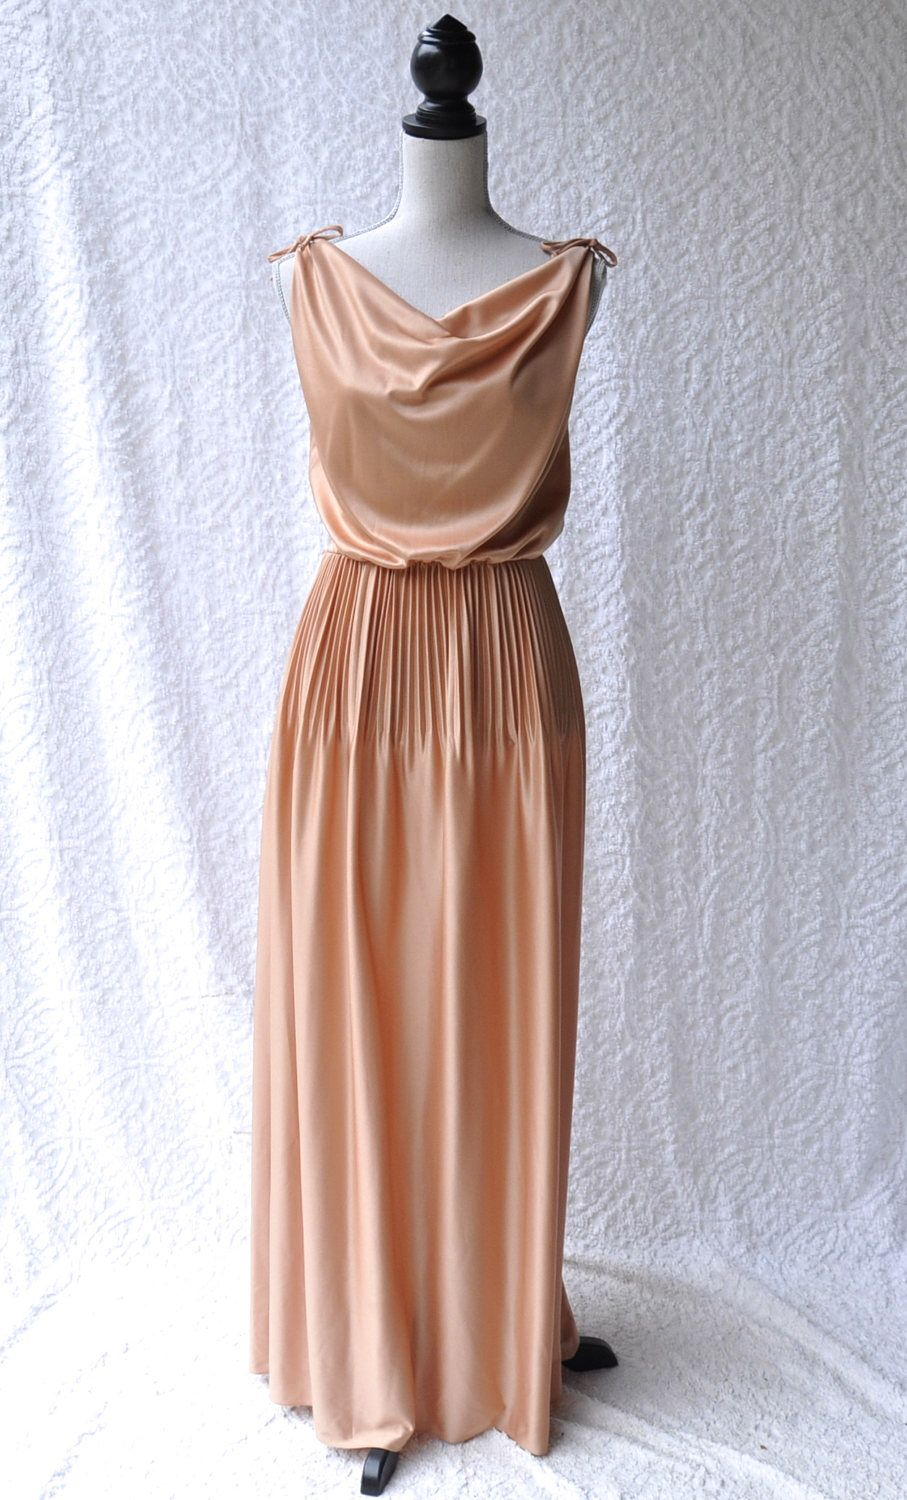 S formal gown mod full length dress s bridesmaid retro